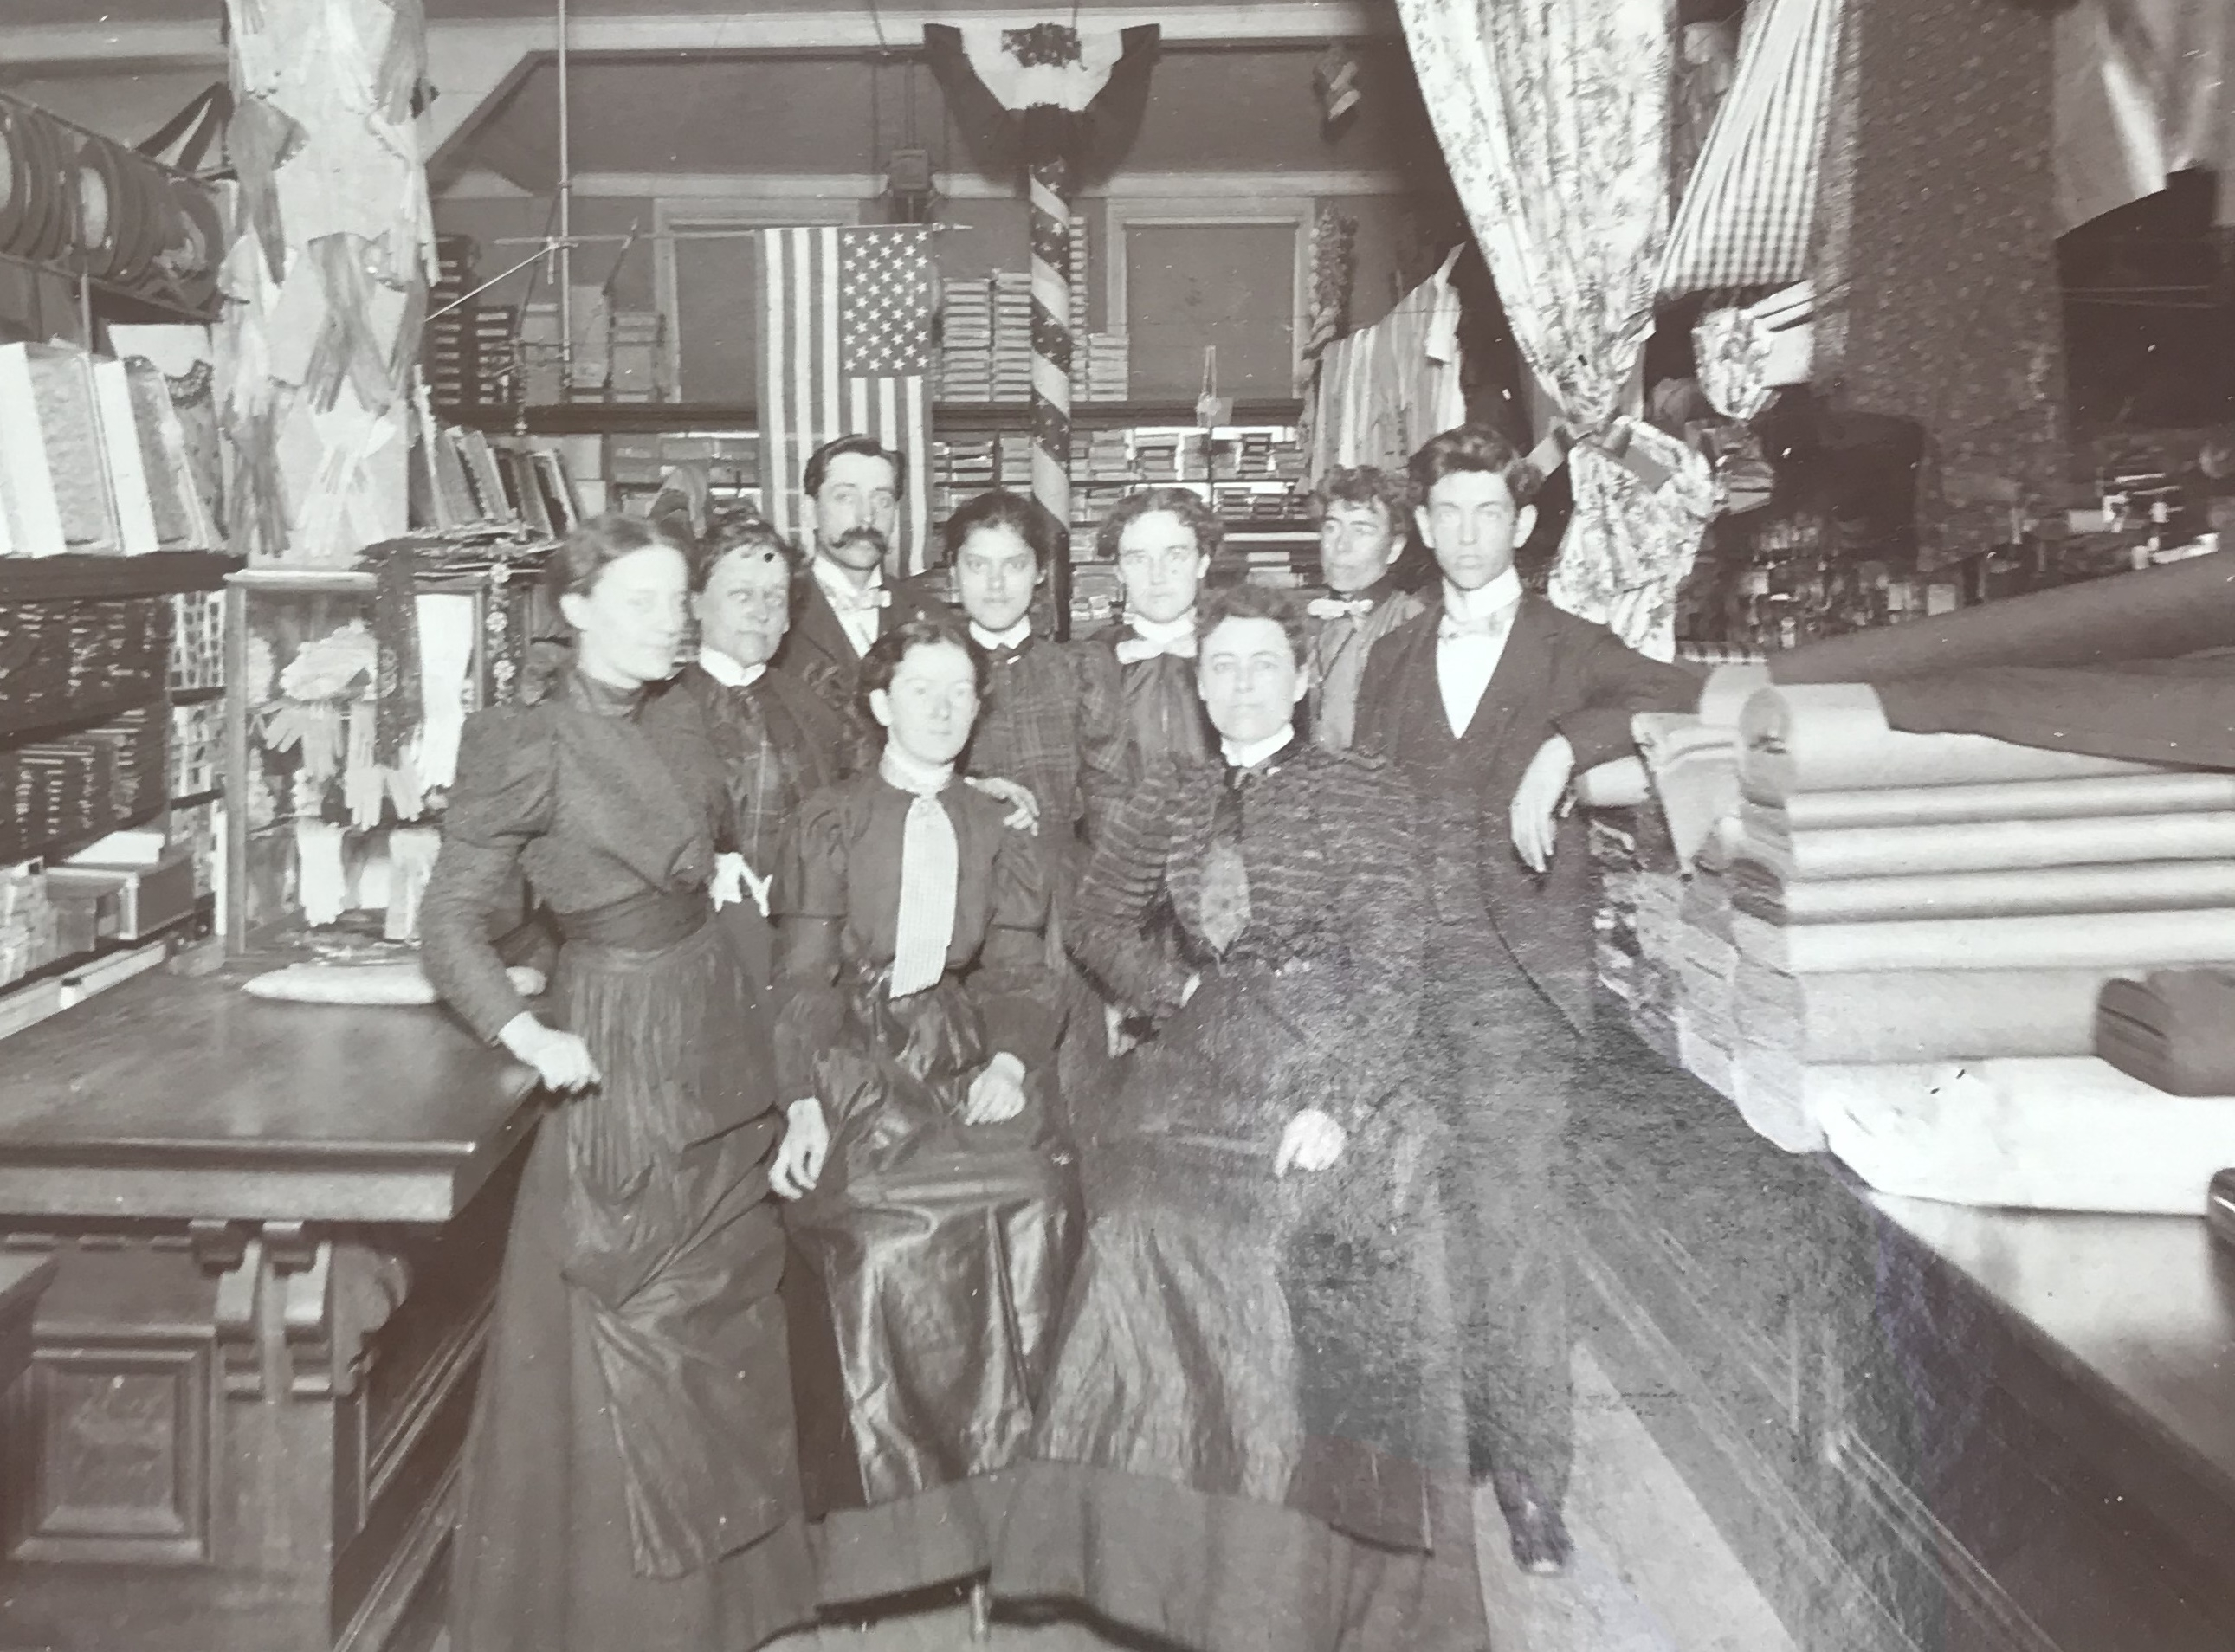 One of the first staff photos taken of the Howe and Stetson / William A. Allen Co. team, circa 1880's. Note 39 star flag in background